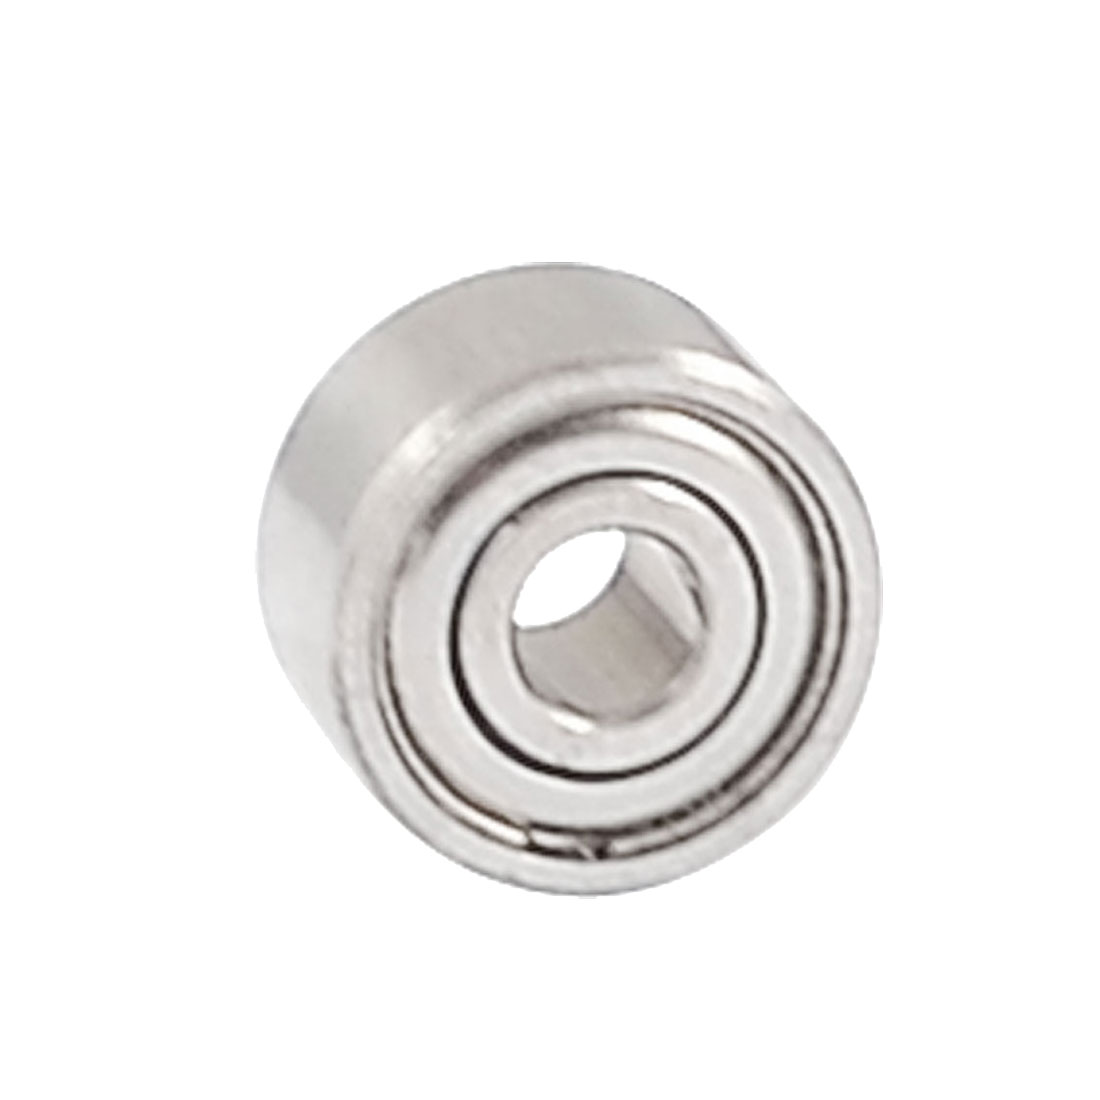 1.5mm x 5mm x 2.5mm Double Sealed Single Row Deep Groove Ball Bearing